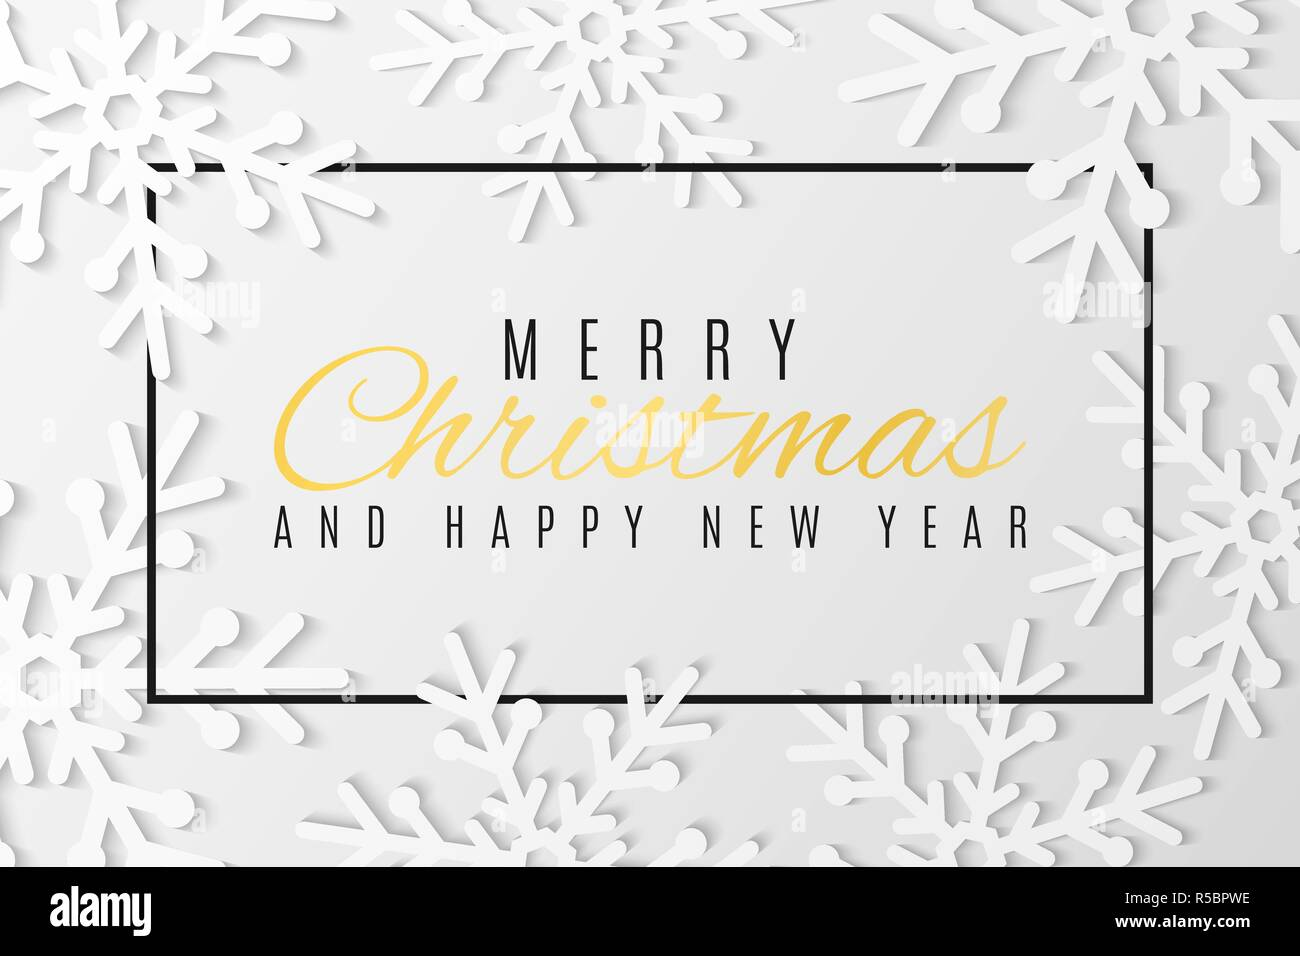 christmas greeting card snowflakes cut out of paper happy new year 2019 seasonal festive web banner text in frame vector illustration eps 10